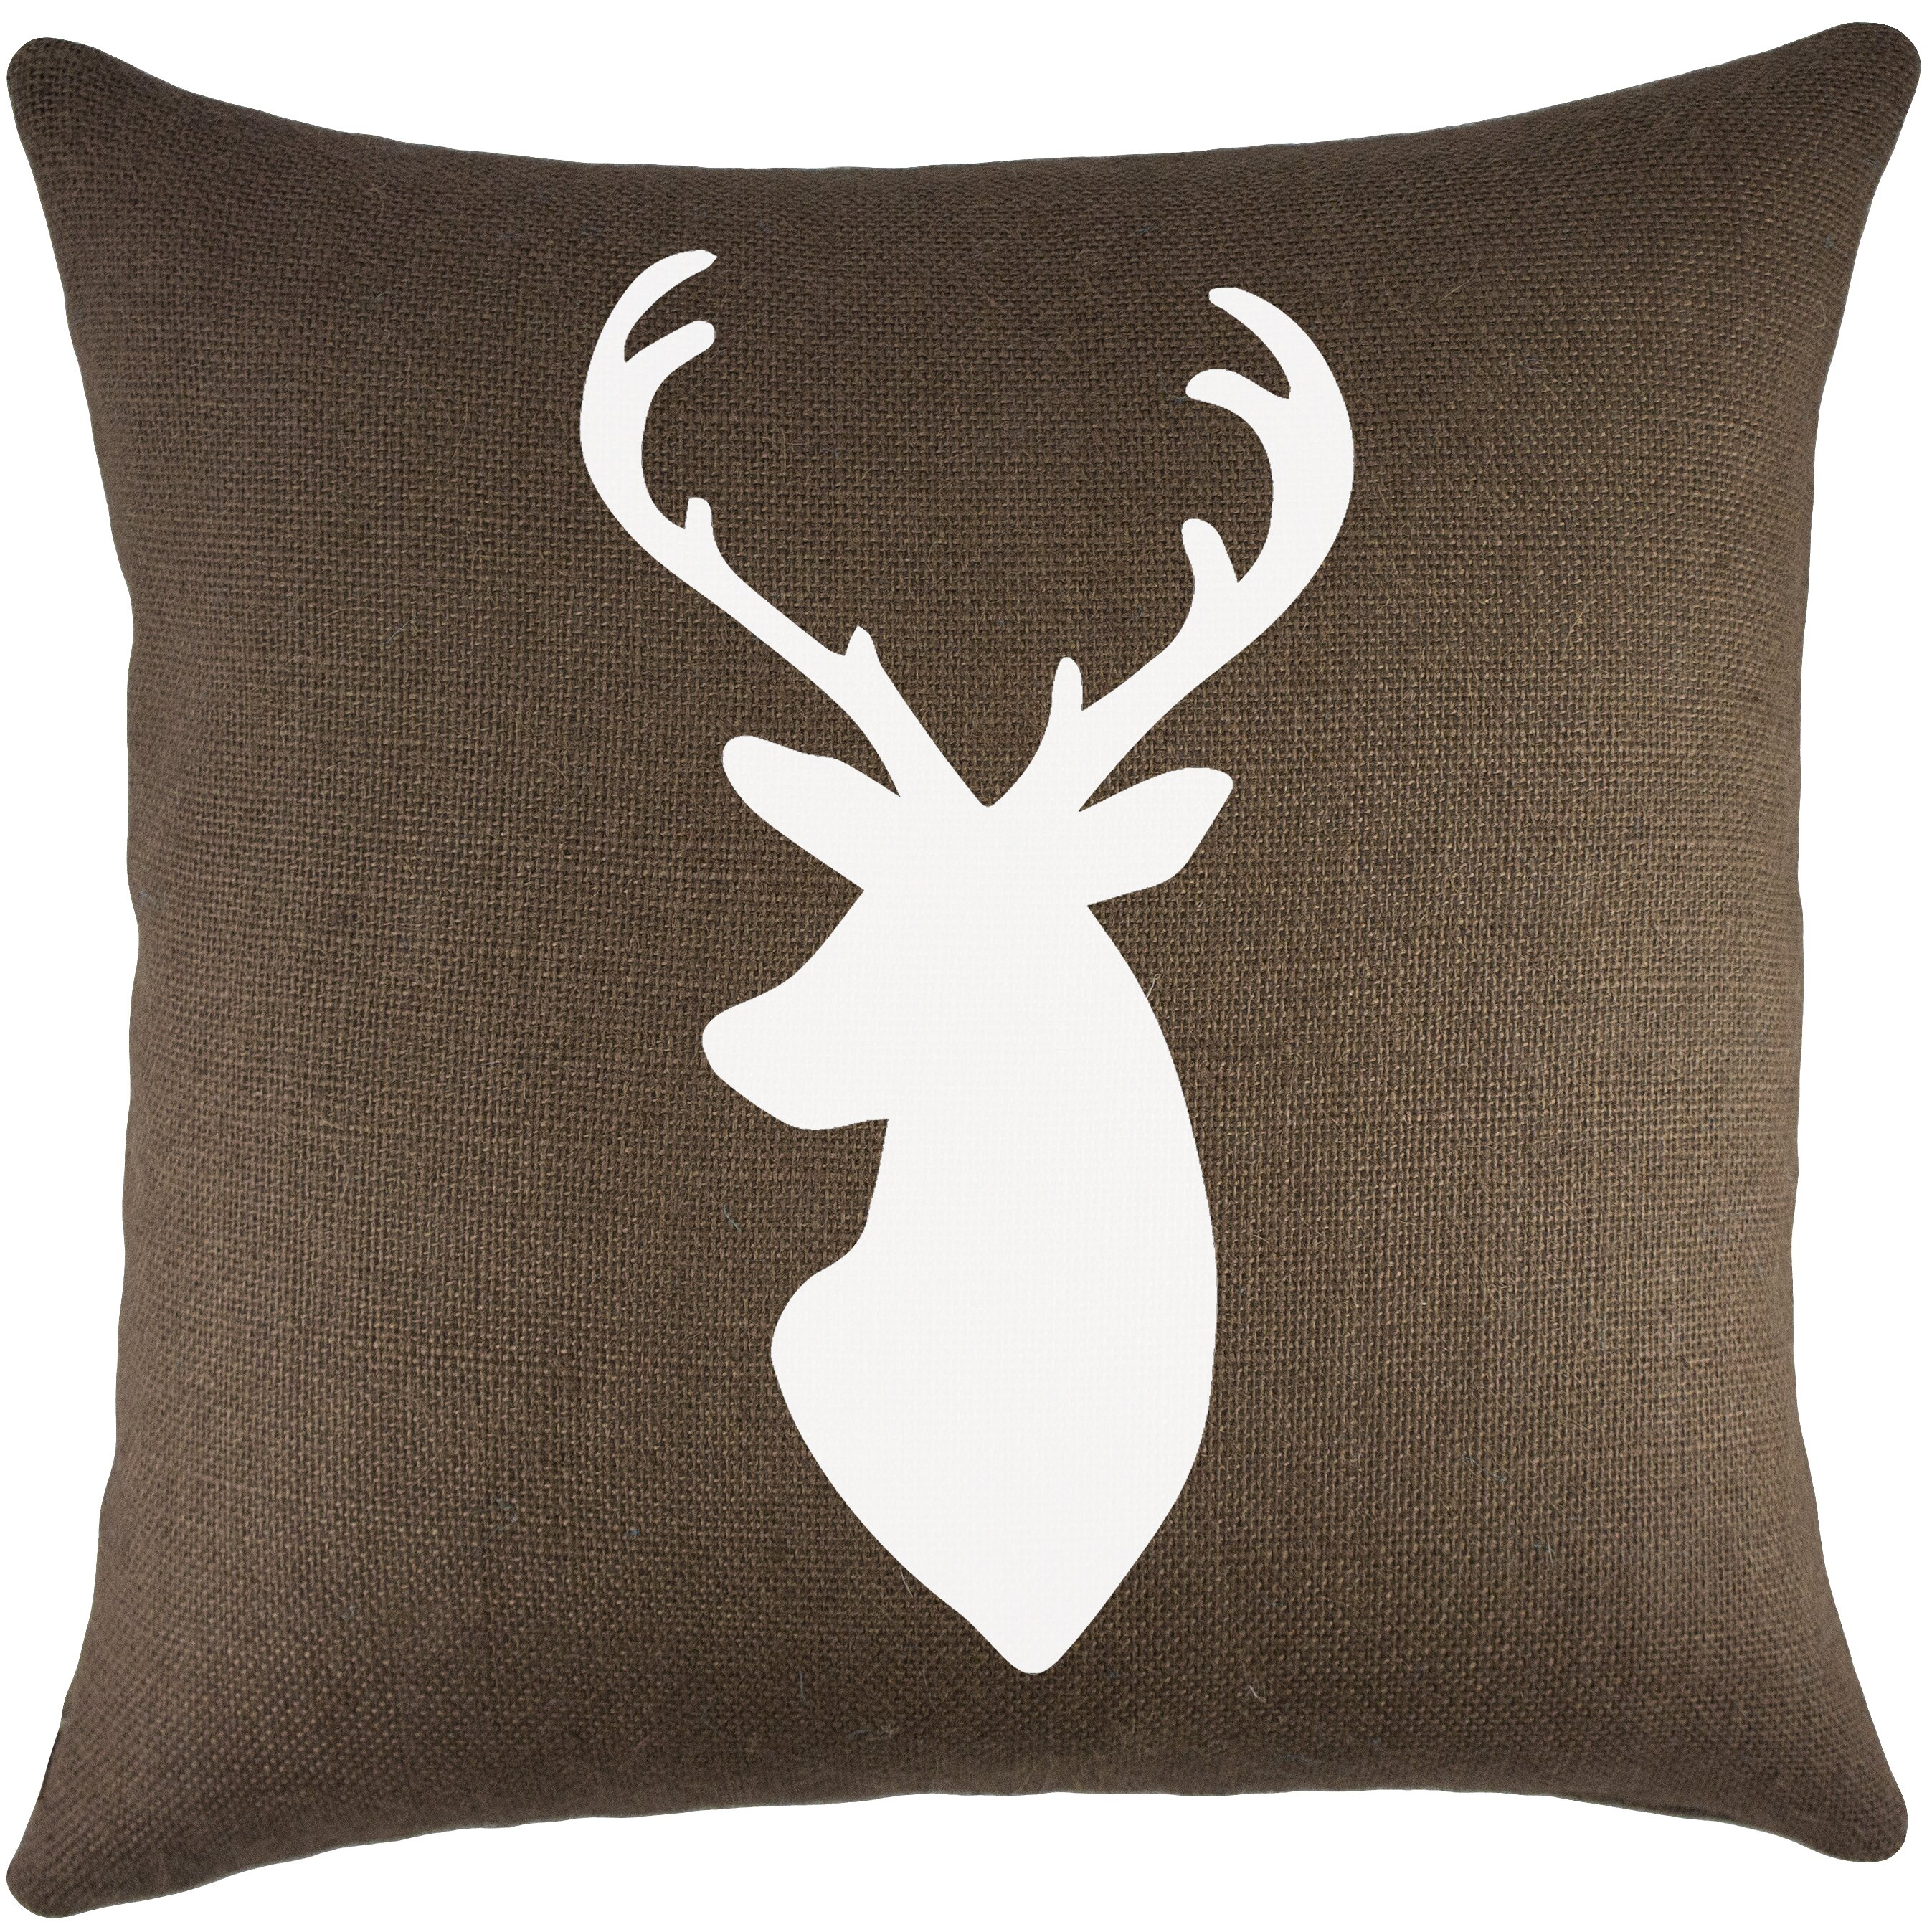 Throw Pillows Deer : TheWatsonShop Deer Burlap Throw Pillow & Reviews Wayfair